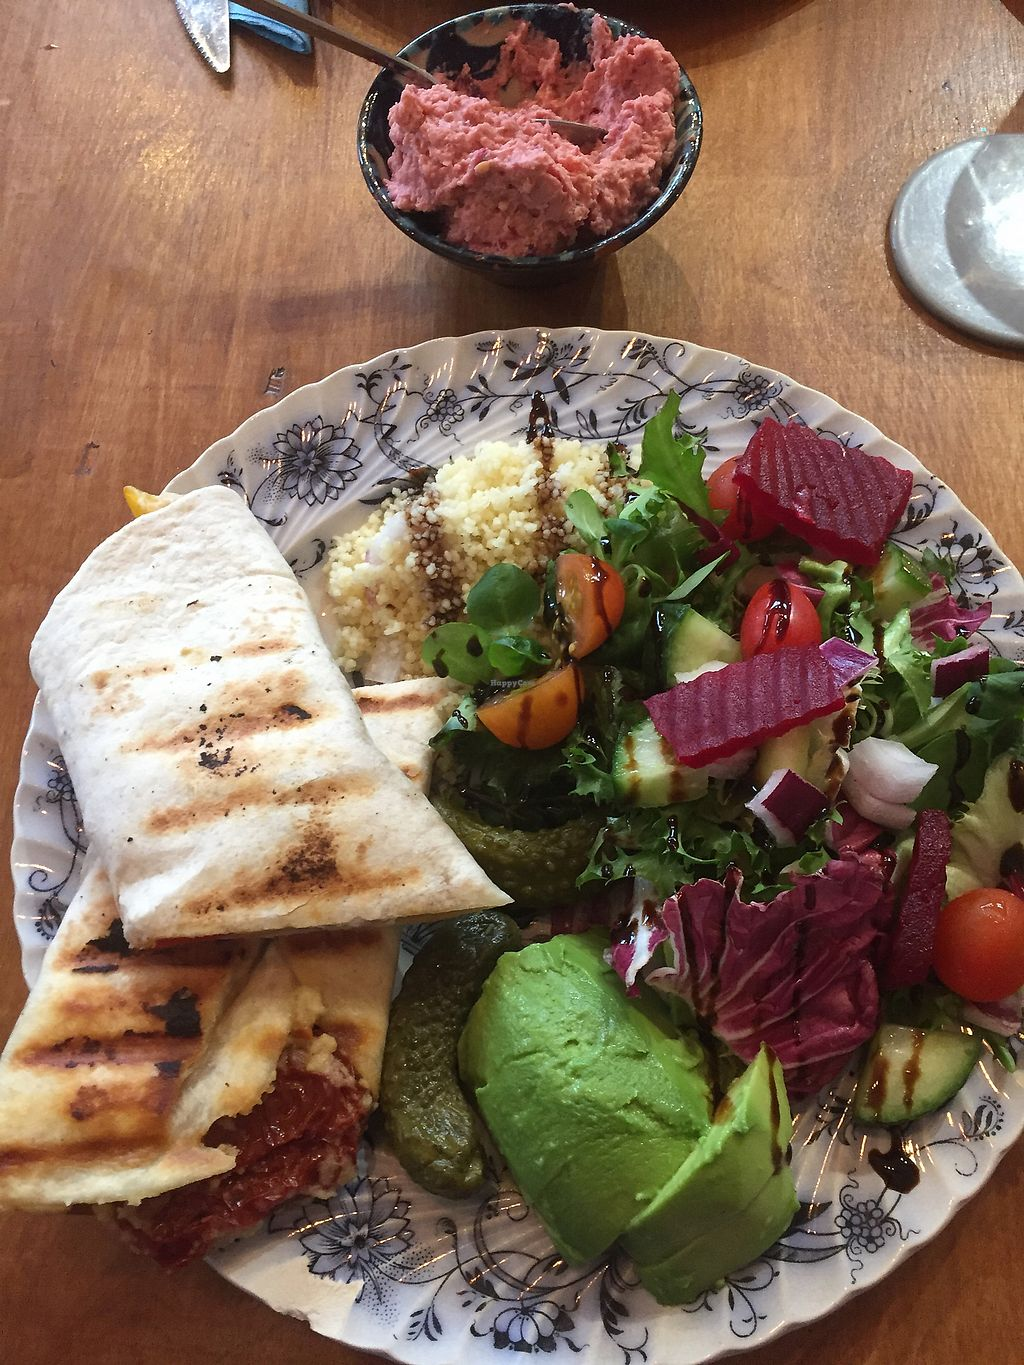 """Photo of T-Potters Cafe and Studio  by <a href=""""/members/profile/VeganSnippets"""">VeganSnippets</a> <br/>Hummous wrap at T Potters  <br/> December 19, 2017  - <a href='/contact/abuse/image/96378/337277'>Report</a>"""